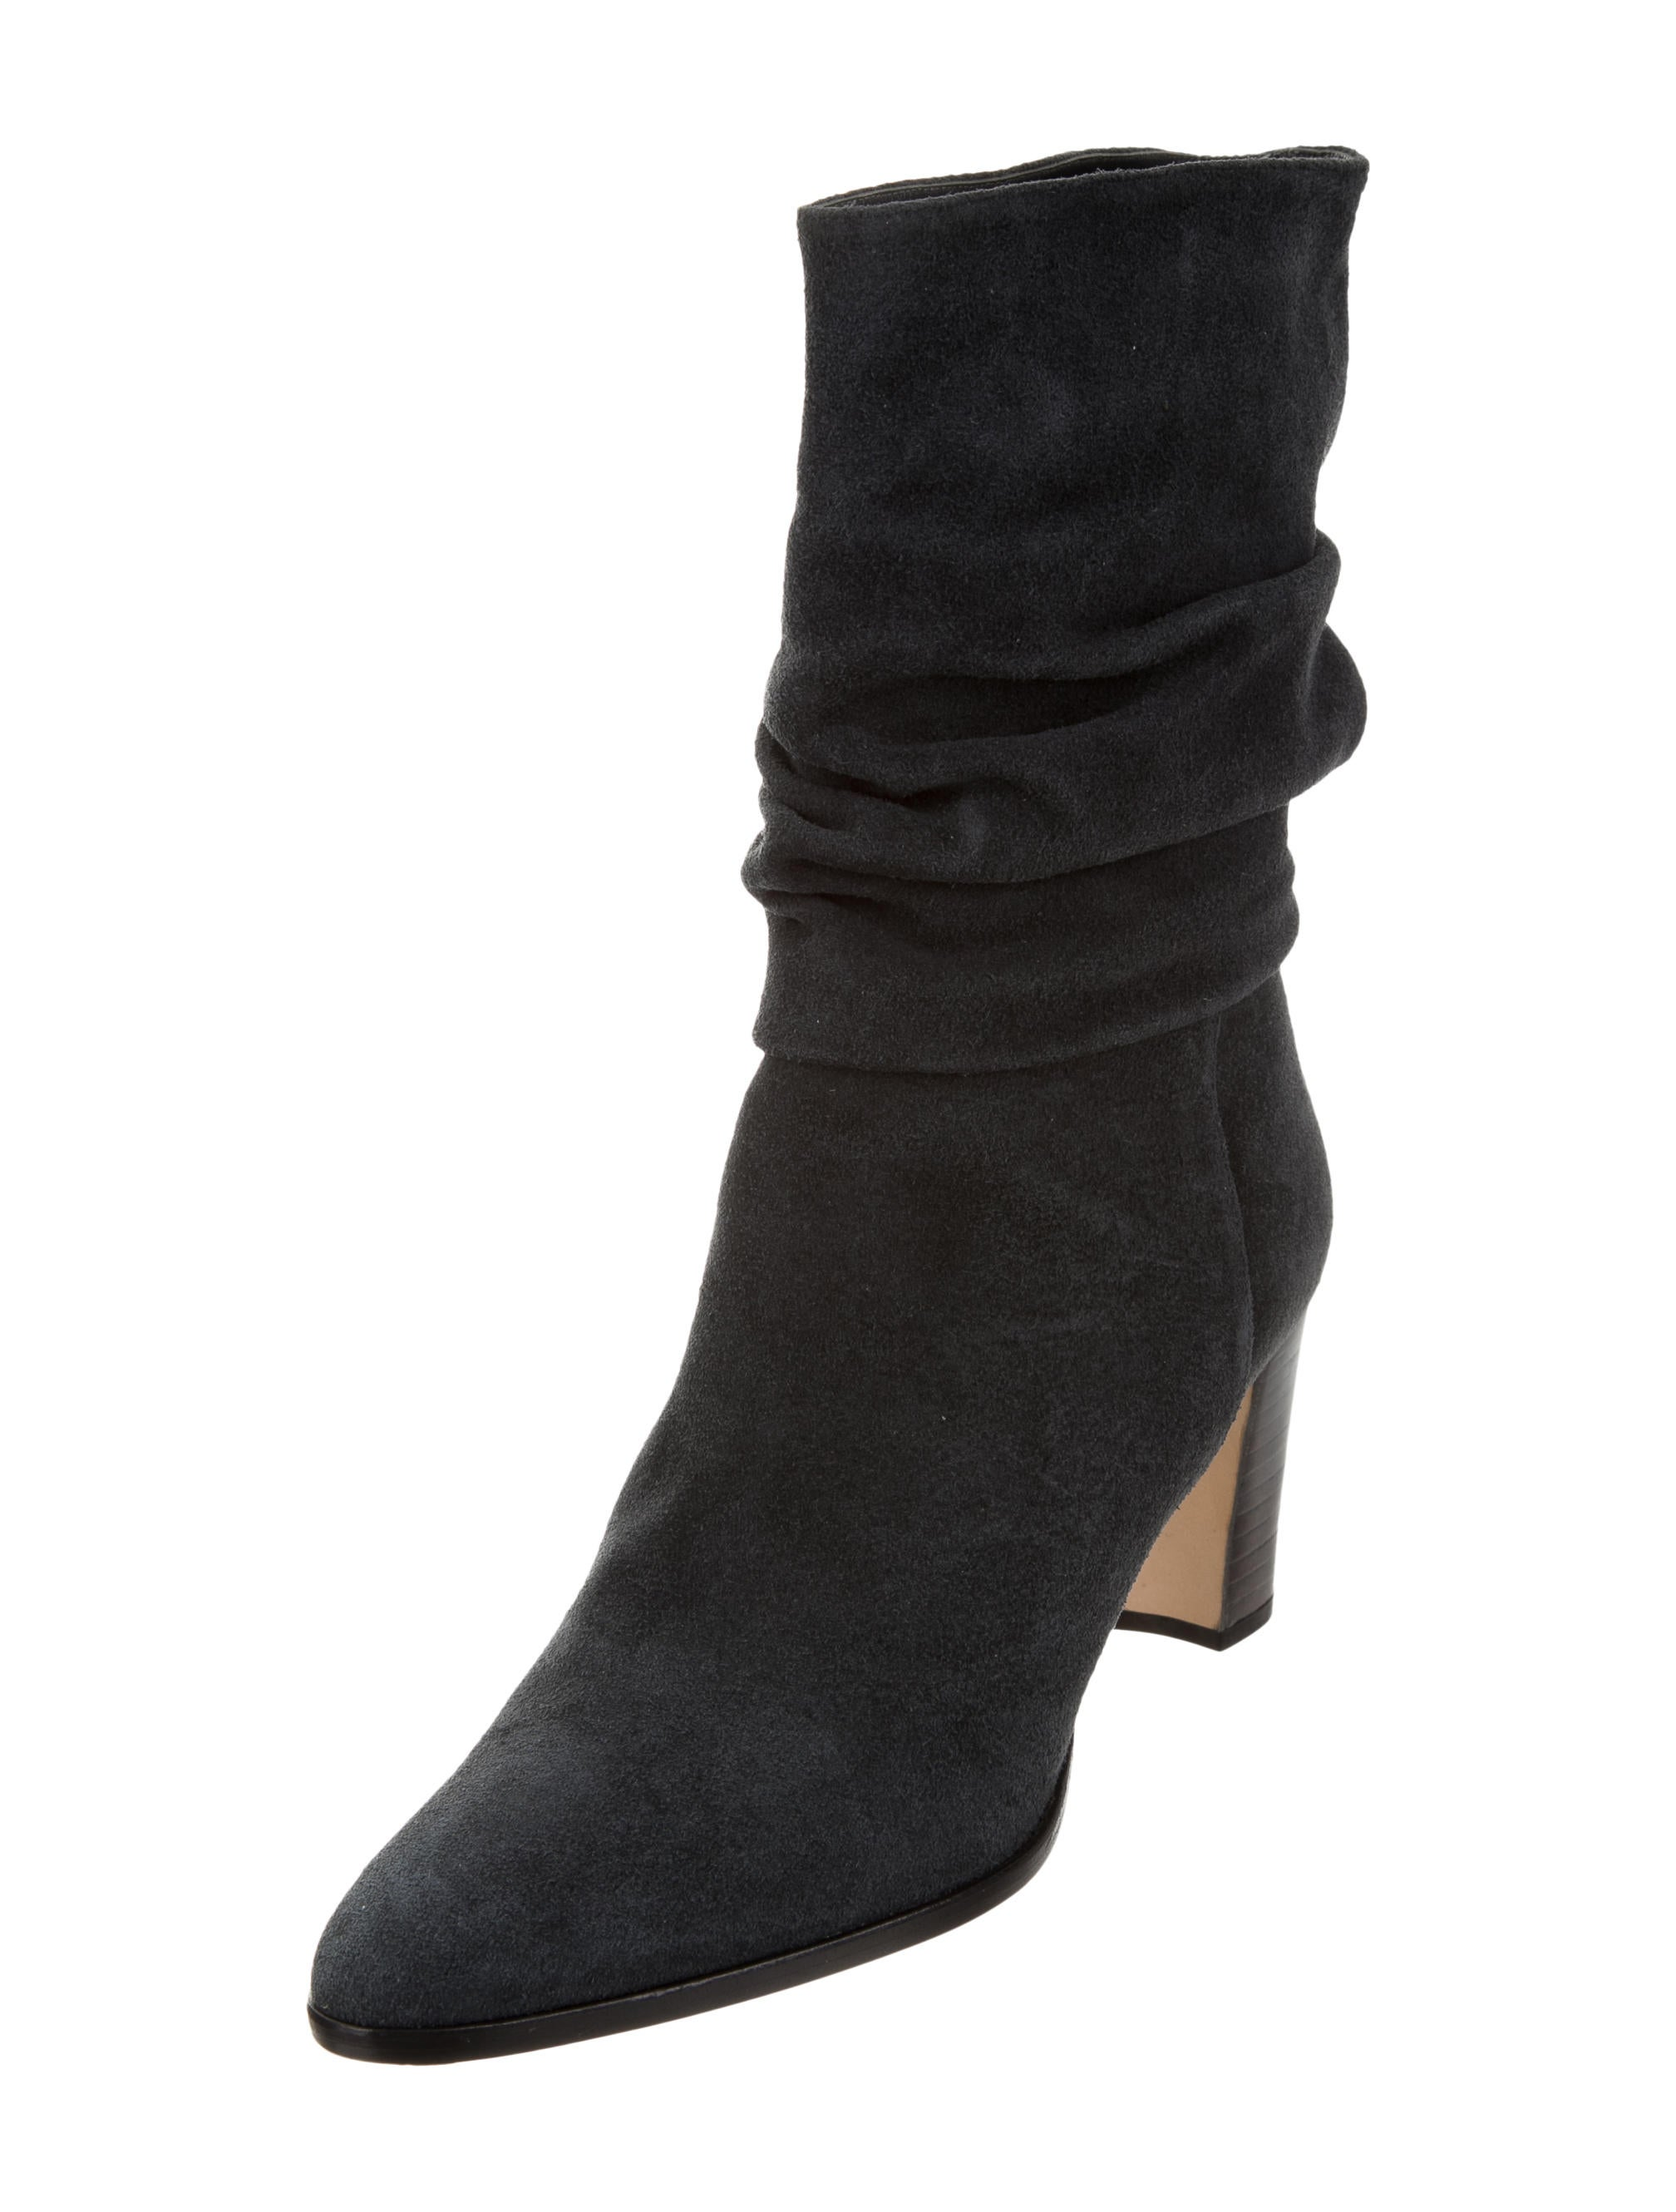 32c70735859 Manolo Blahnik Ruched Suede Ankle Boots w  Tags - Shoes - MOO73983 ...